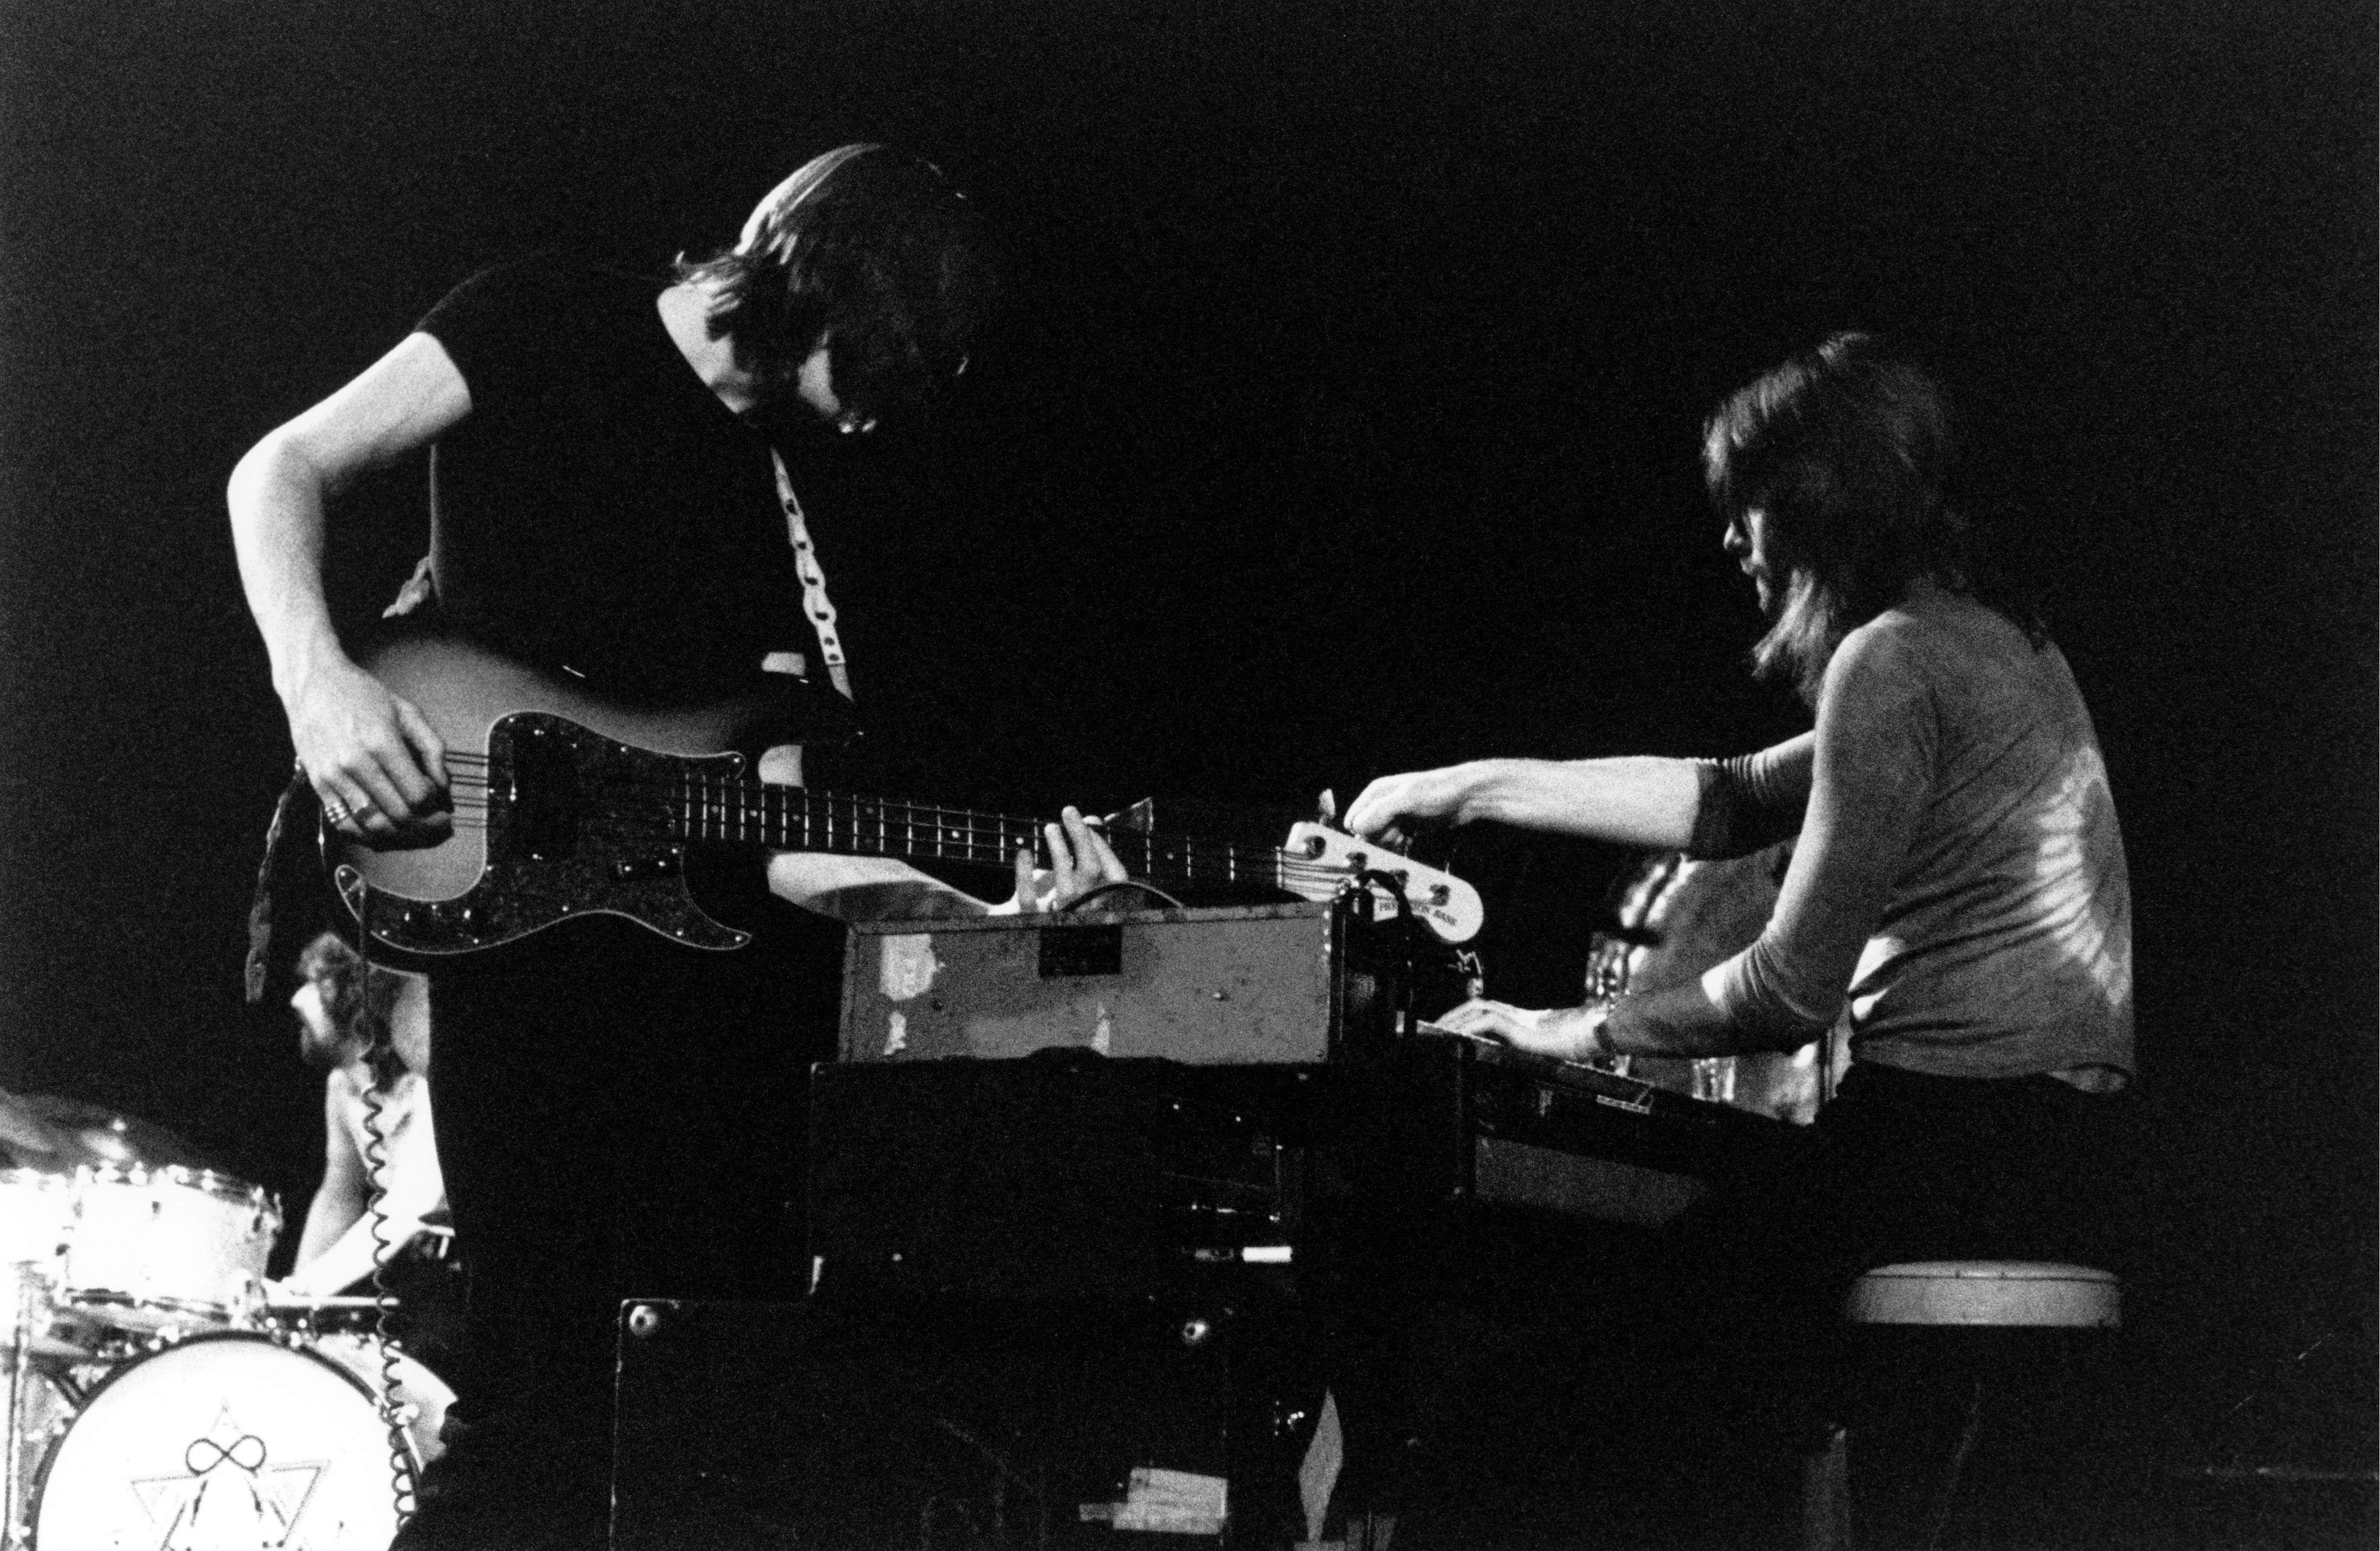 Pink Floyd performing; black and white photo